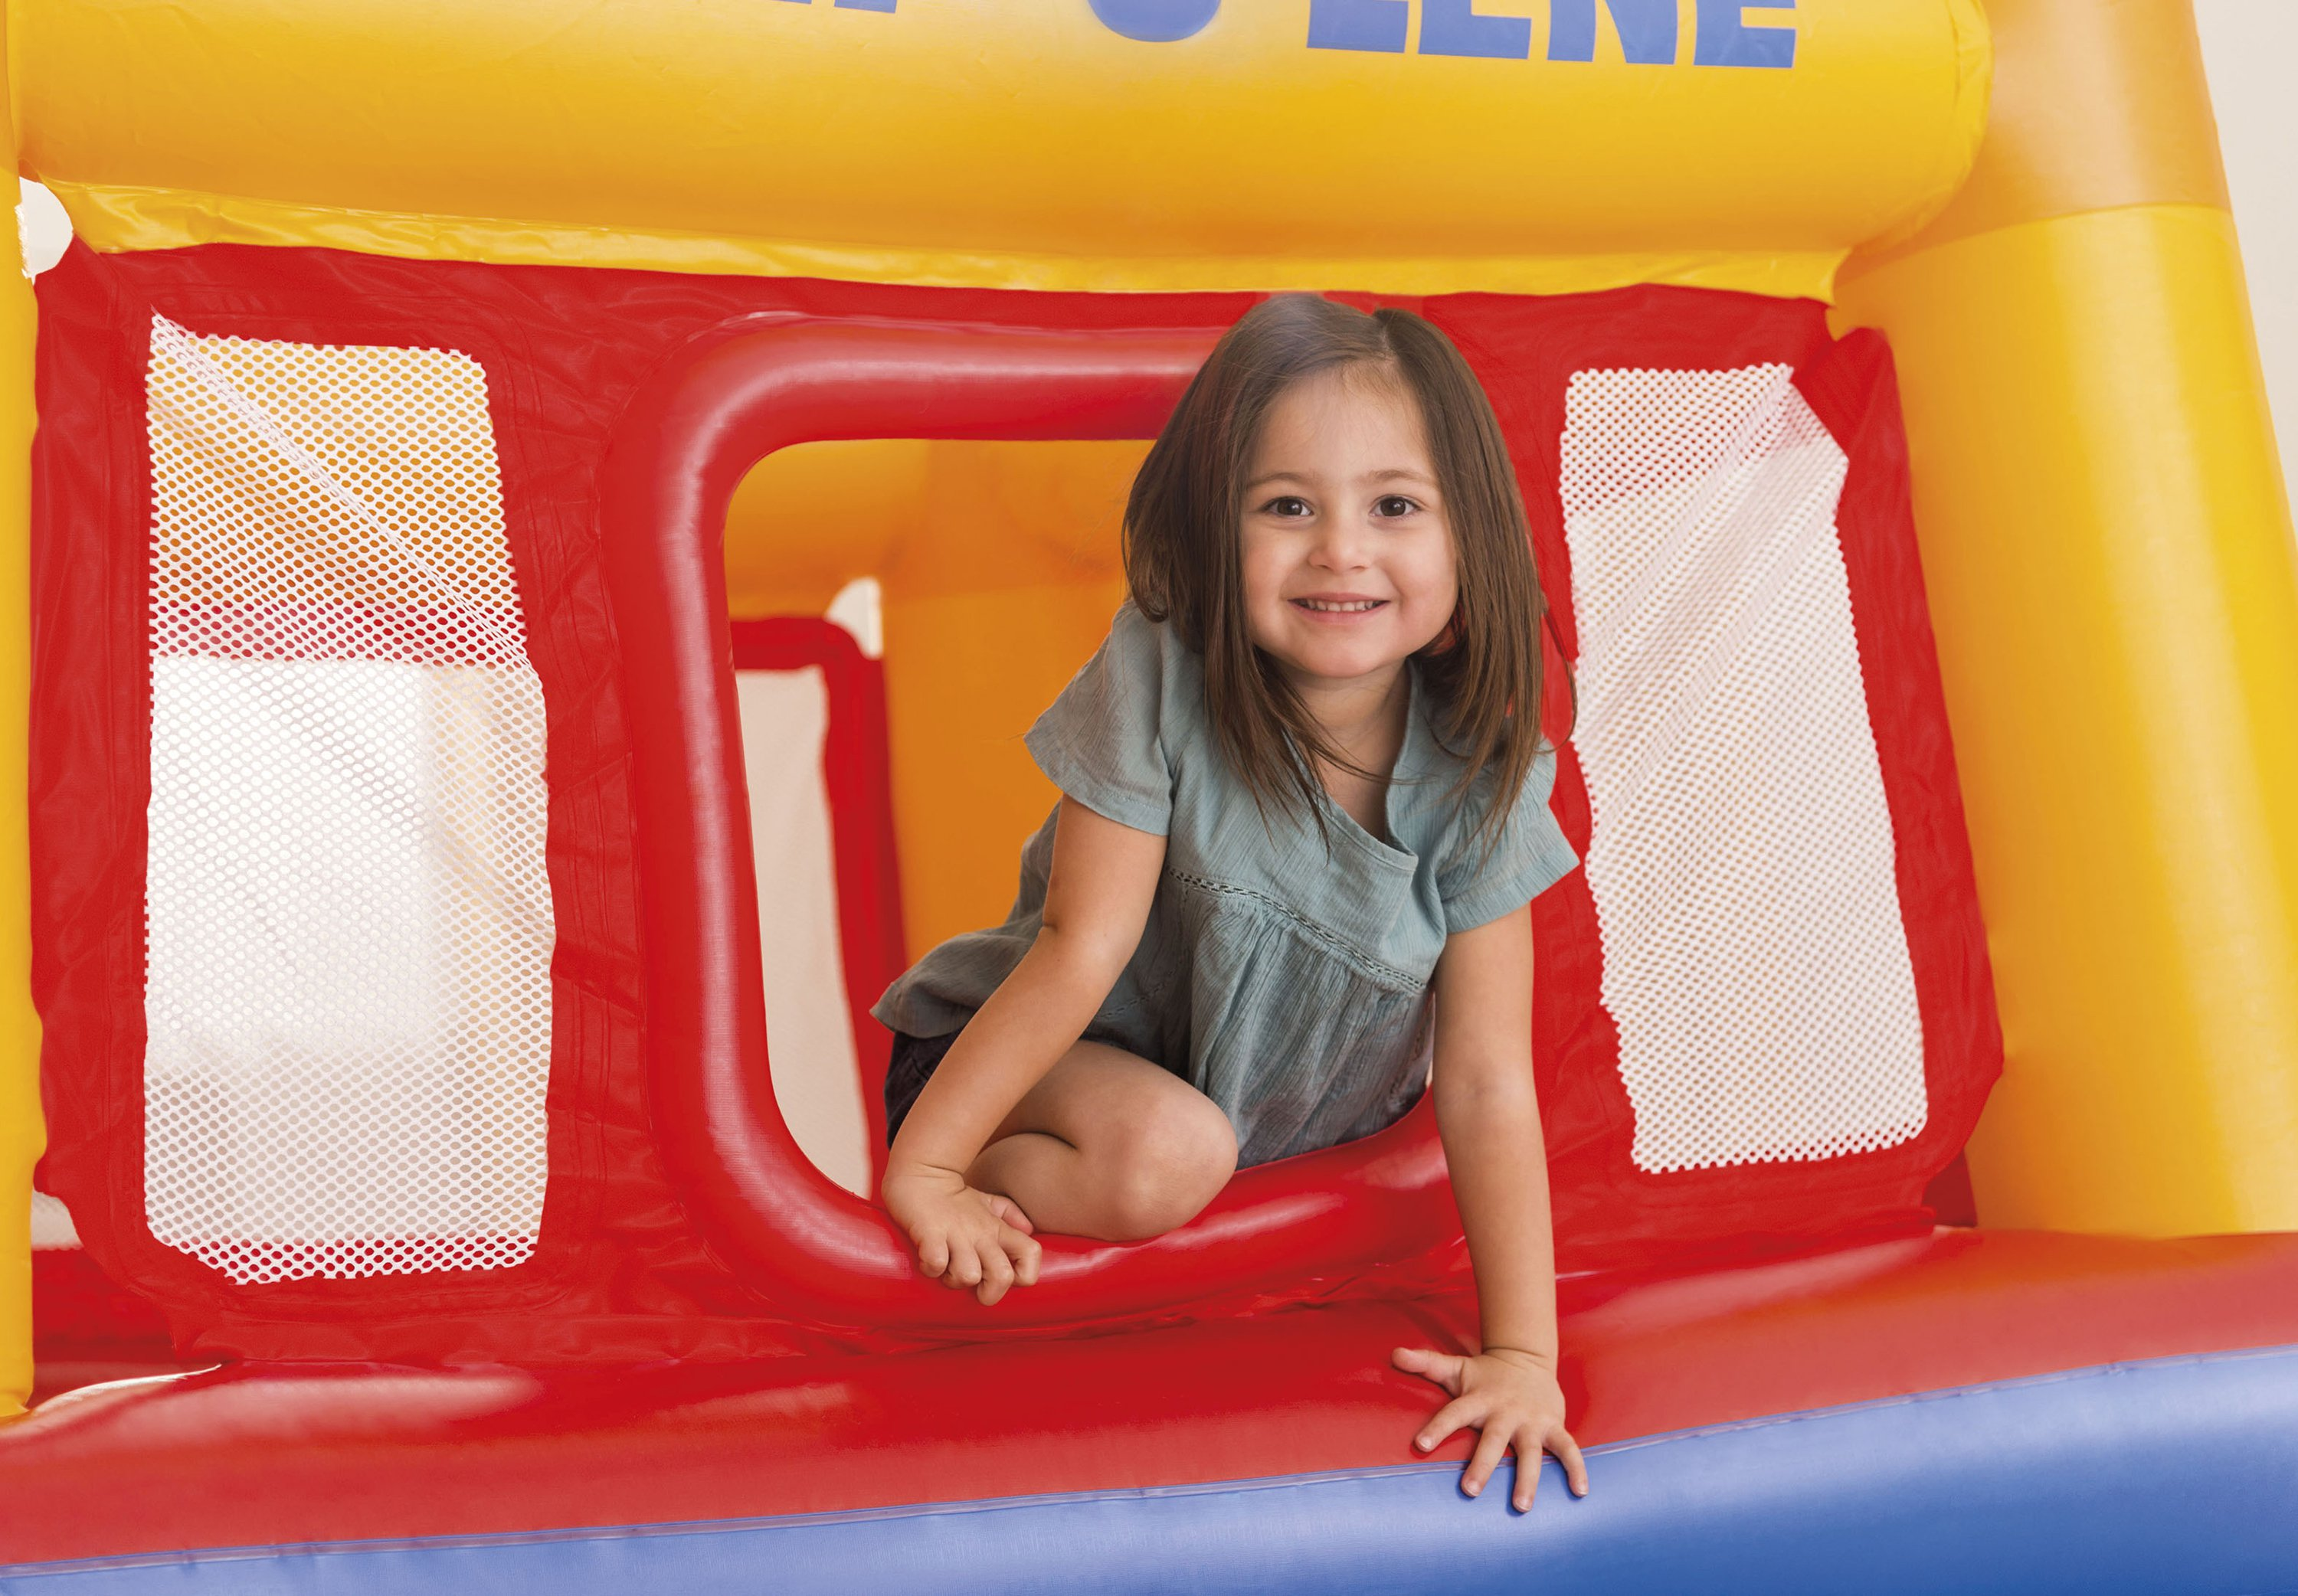 008b0c97b Intex Inflatable Playhouse Jump-O-Lene Bouncer - Walmart.com